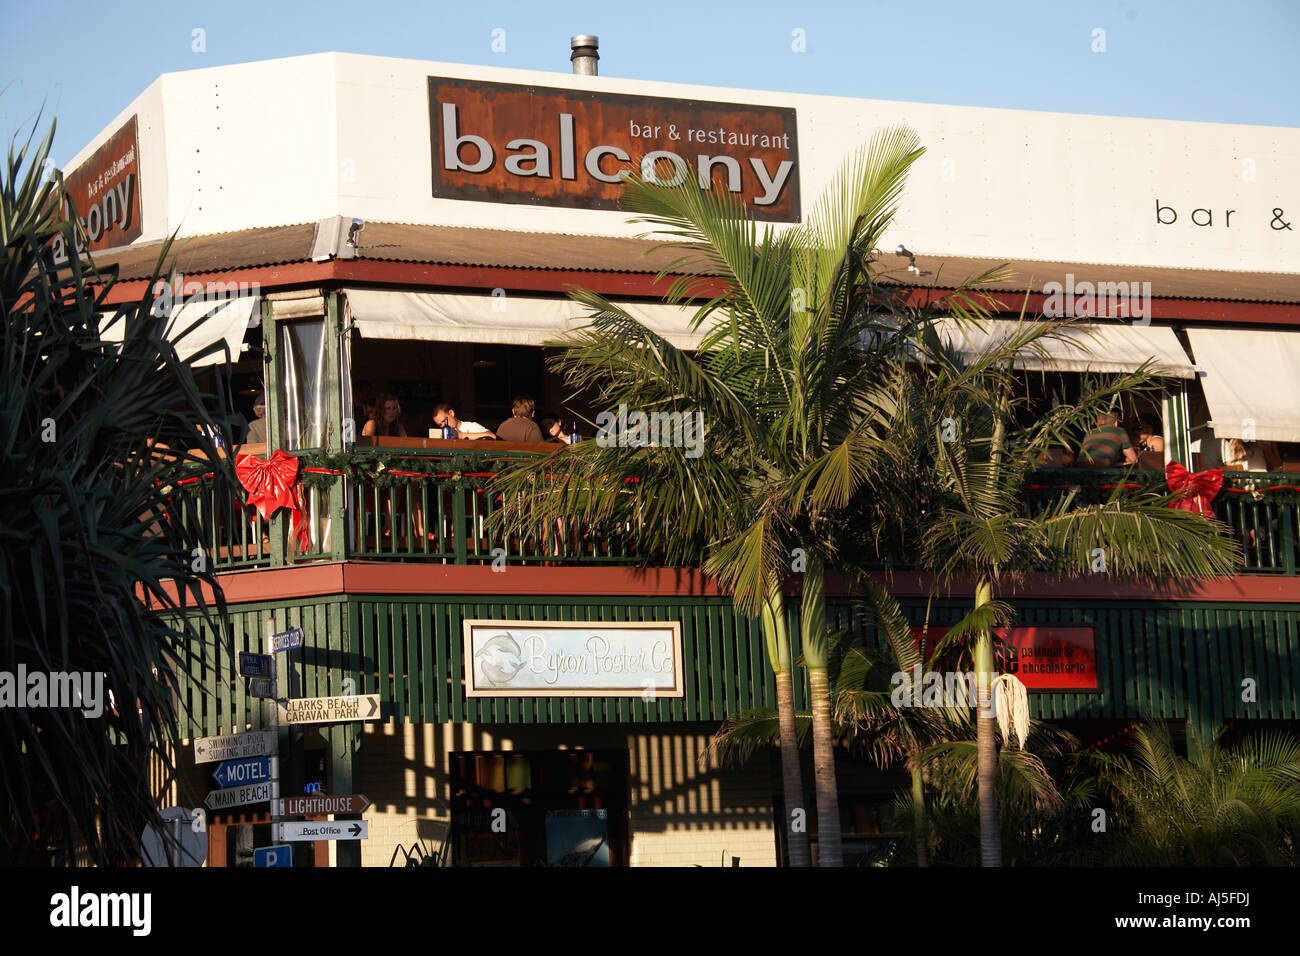 Balcony bar and restuarant in byron bay new south wales for Balcony bar byron bay menu